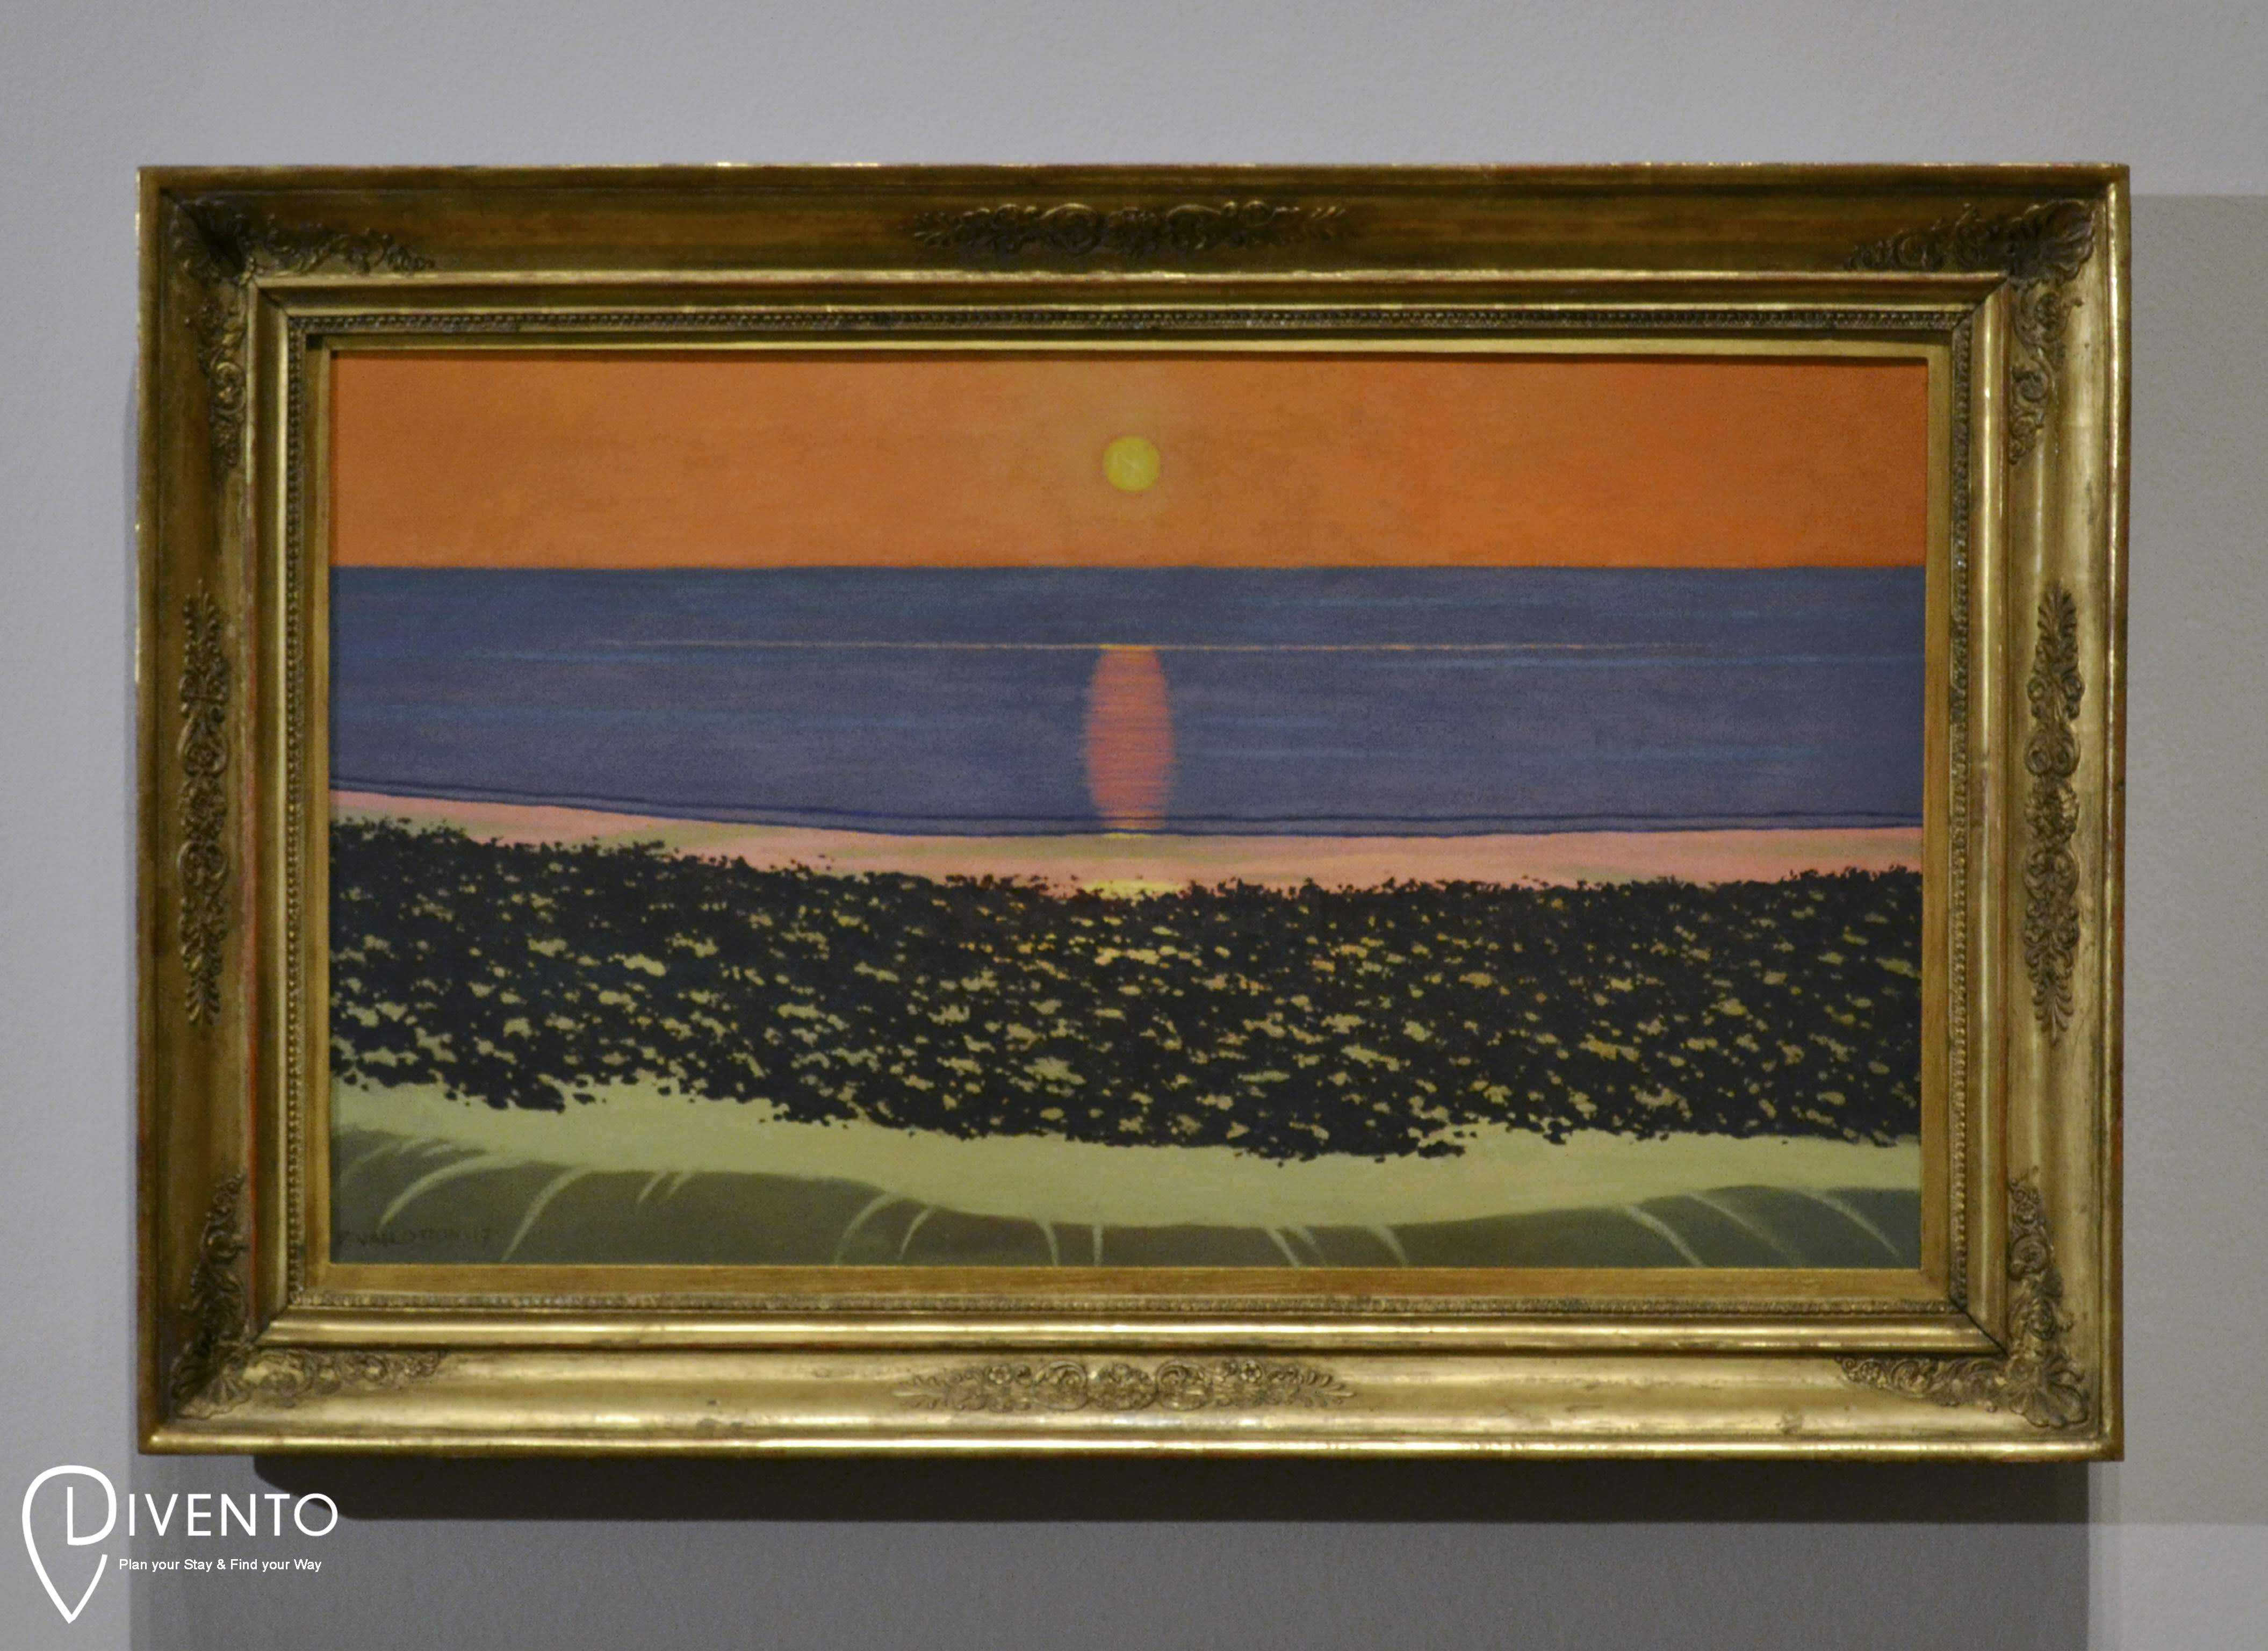 Félix Vallotton, in an exhibition at the Royal Academy in London 30 June - 29 September